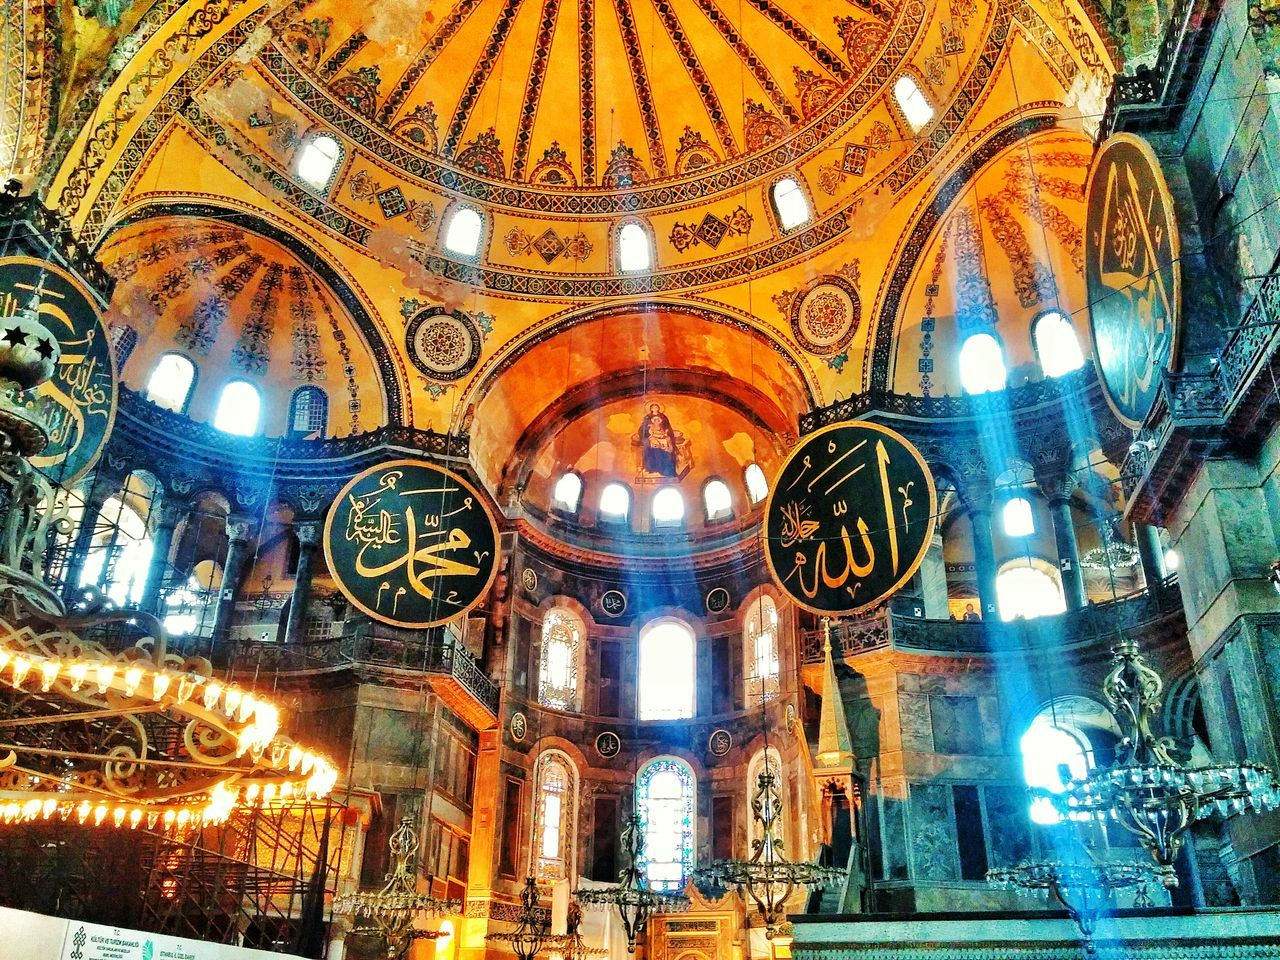 Who says you can't fall in love with a place or a country! I fall in love with Istanbul Turkey and all its Beautiful streets and speachless arts.. Myfutureplace Wannagoback Takemethere Memories October2014 Hagia Sophia Ayasofya Sultanahmet